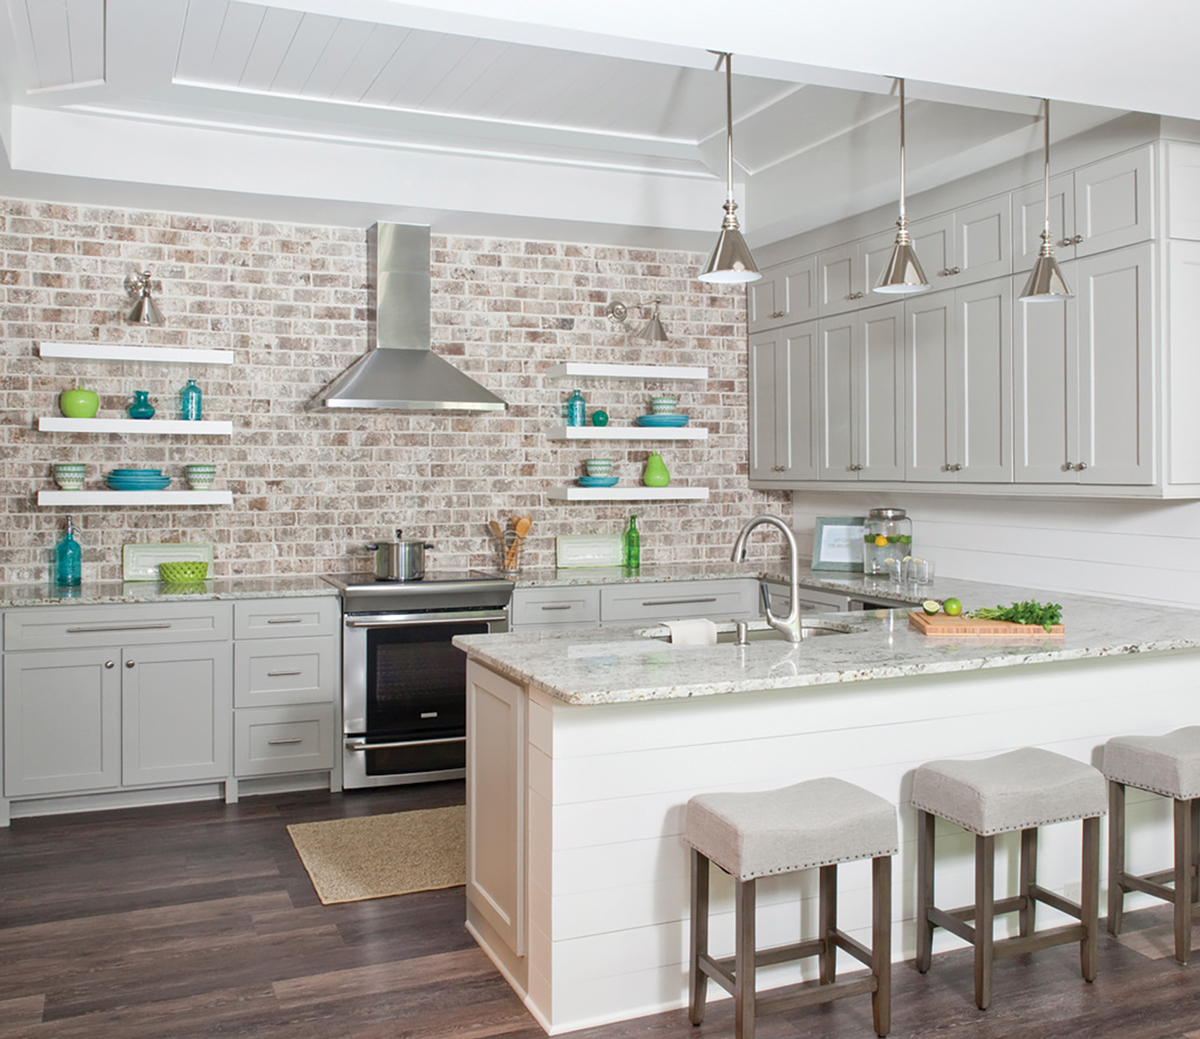 Open Shelving Kitchen Cabinets Kitchen Cabinets Or Open Shelving We Asked An Expert For